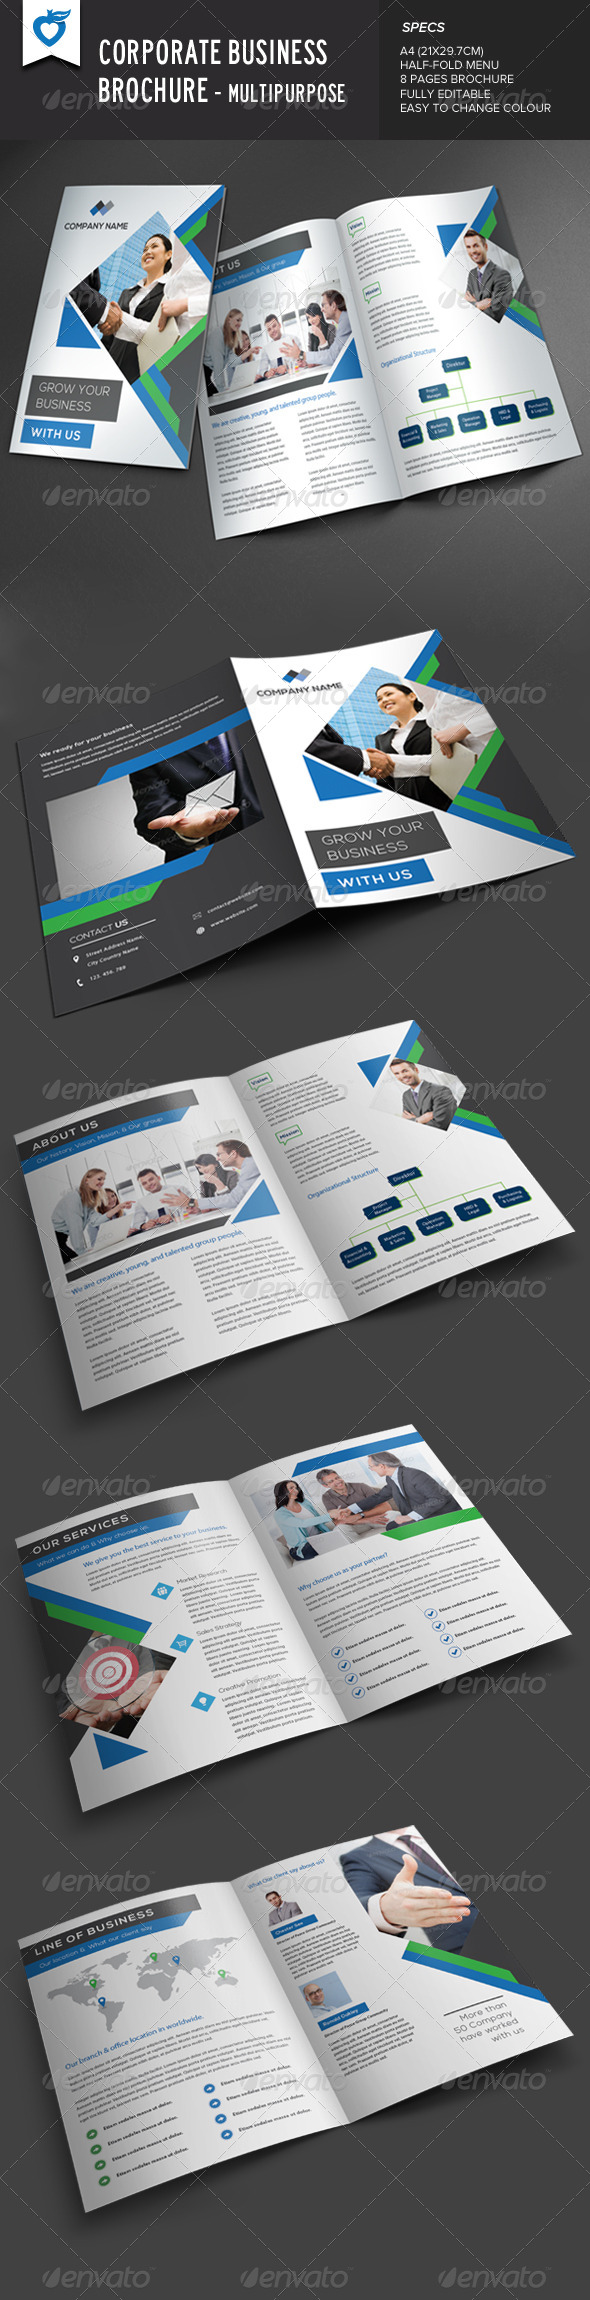 GraphicRiver Corporate Business Brochure Multipurpose 8544366